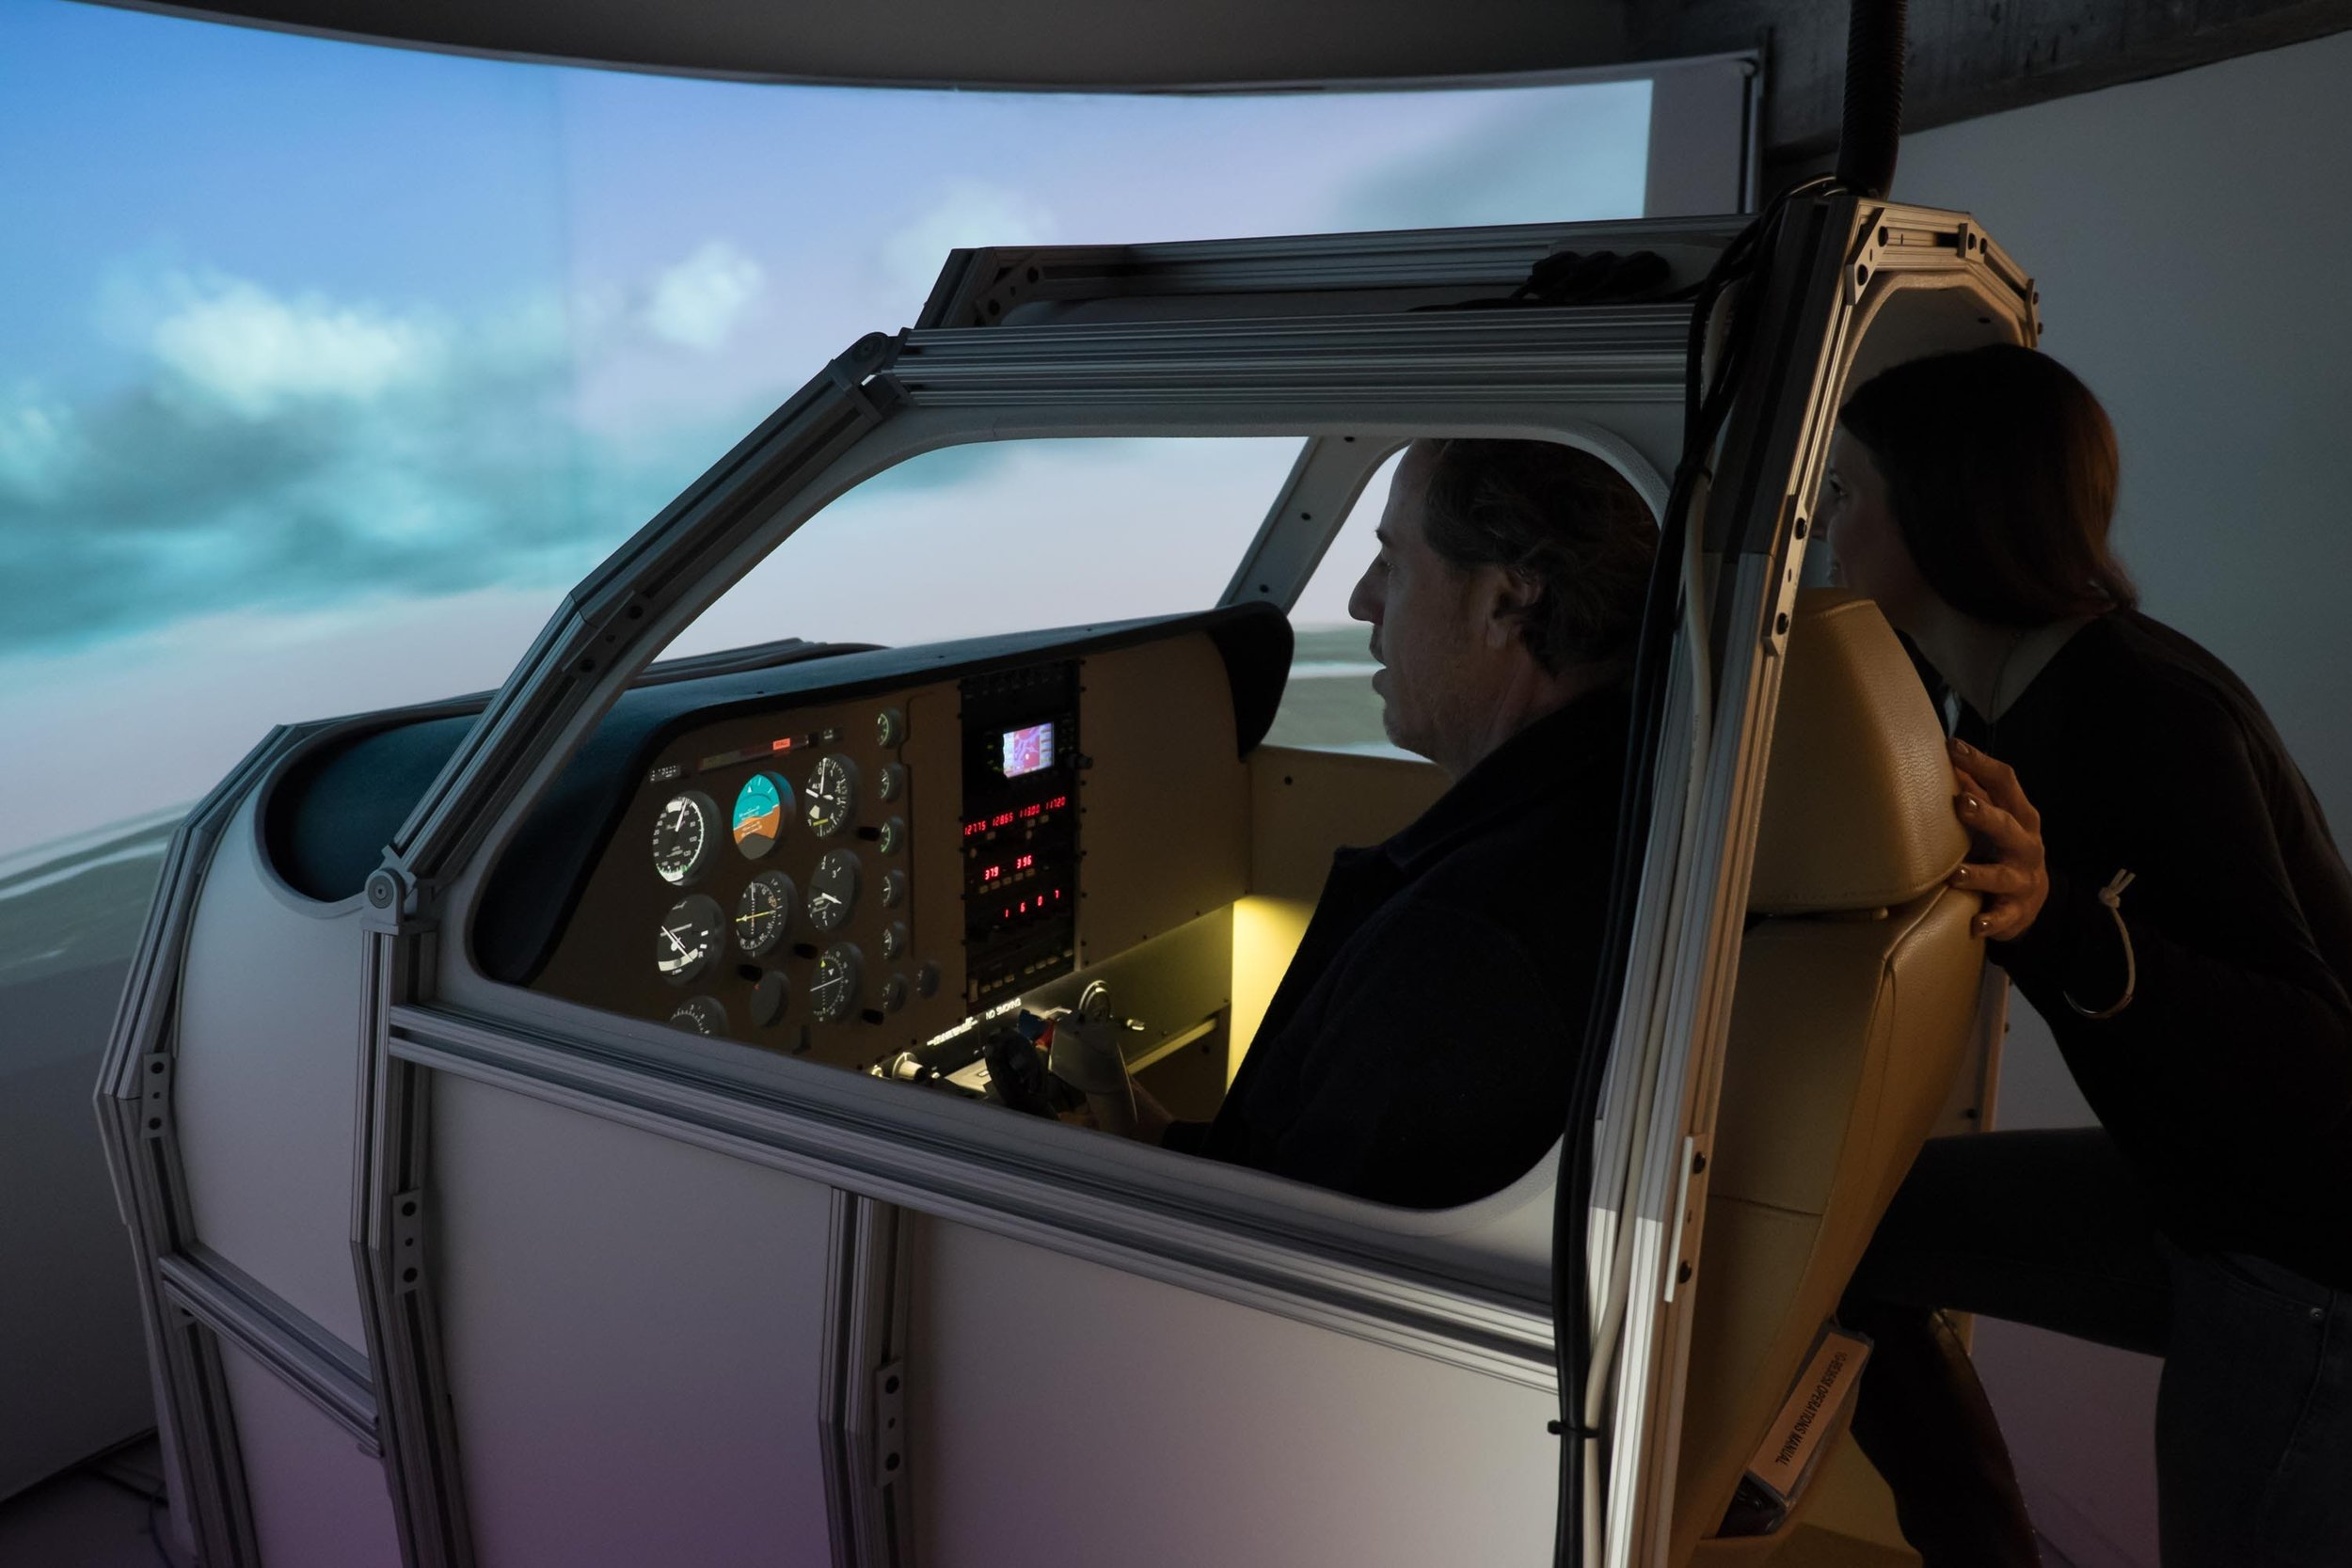 Instruments & Avionics - Beyond the realistic flight modeling, cockpit features will be familiar to both Bonanza and Baron pilots.